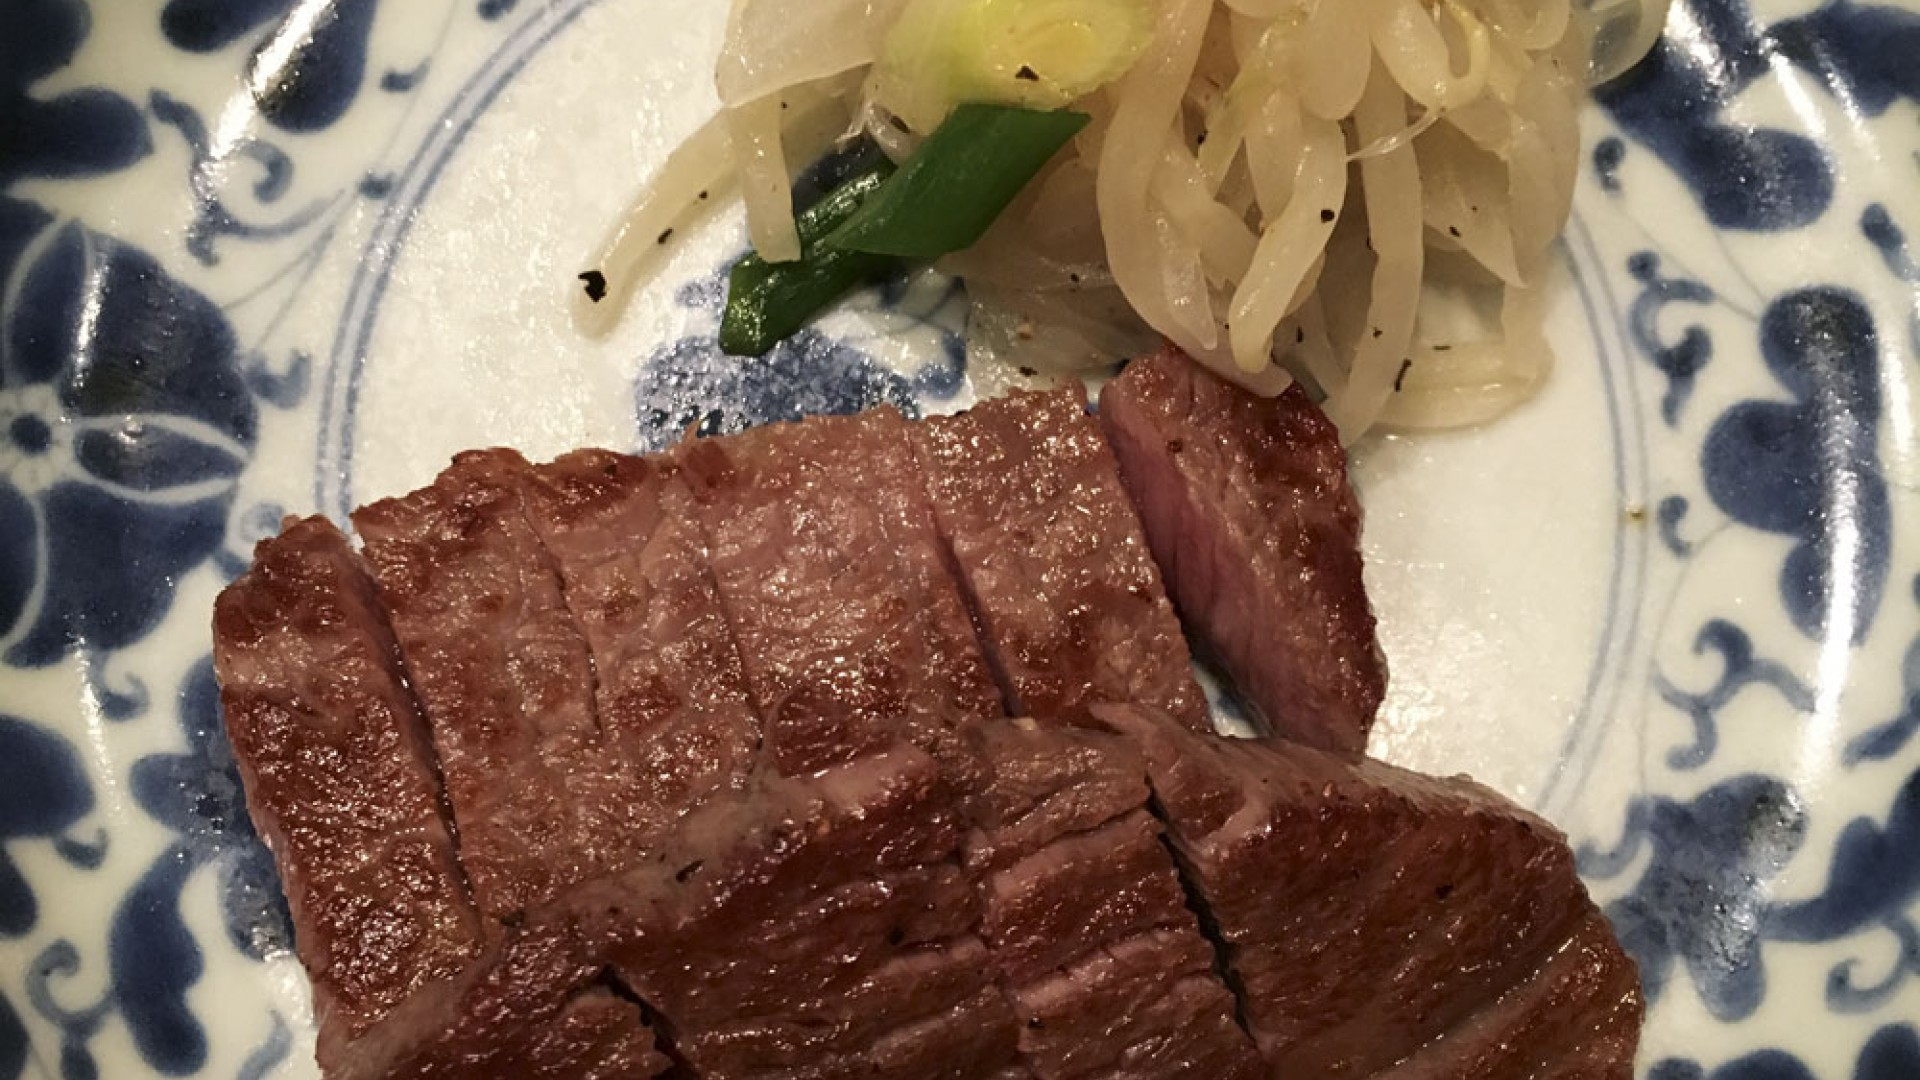 Kobe beef from Inn Gobosho, Kobe